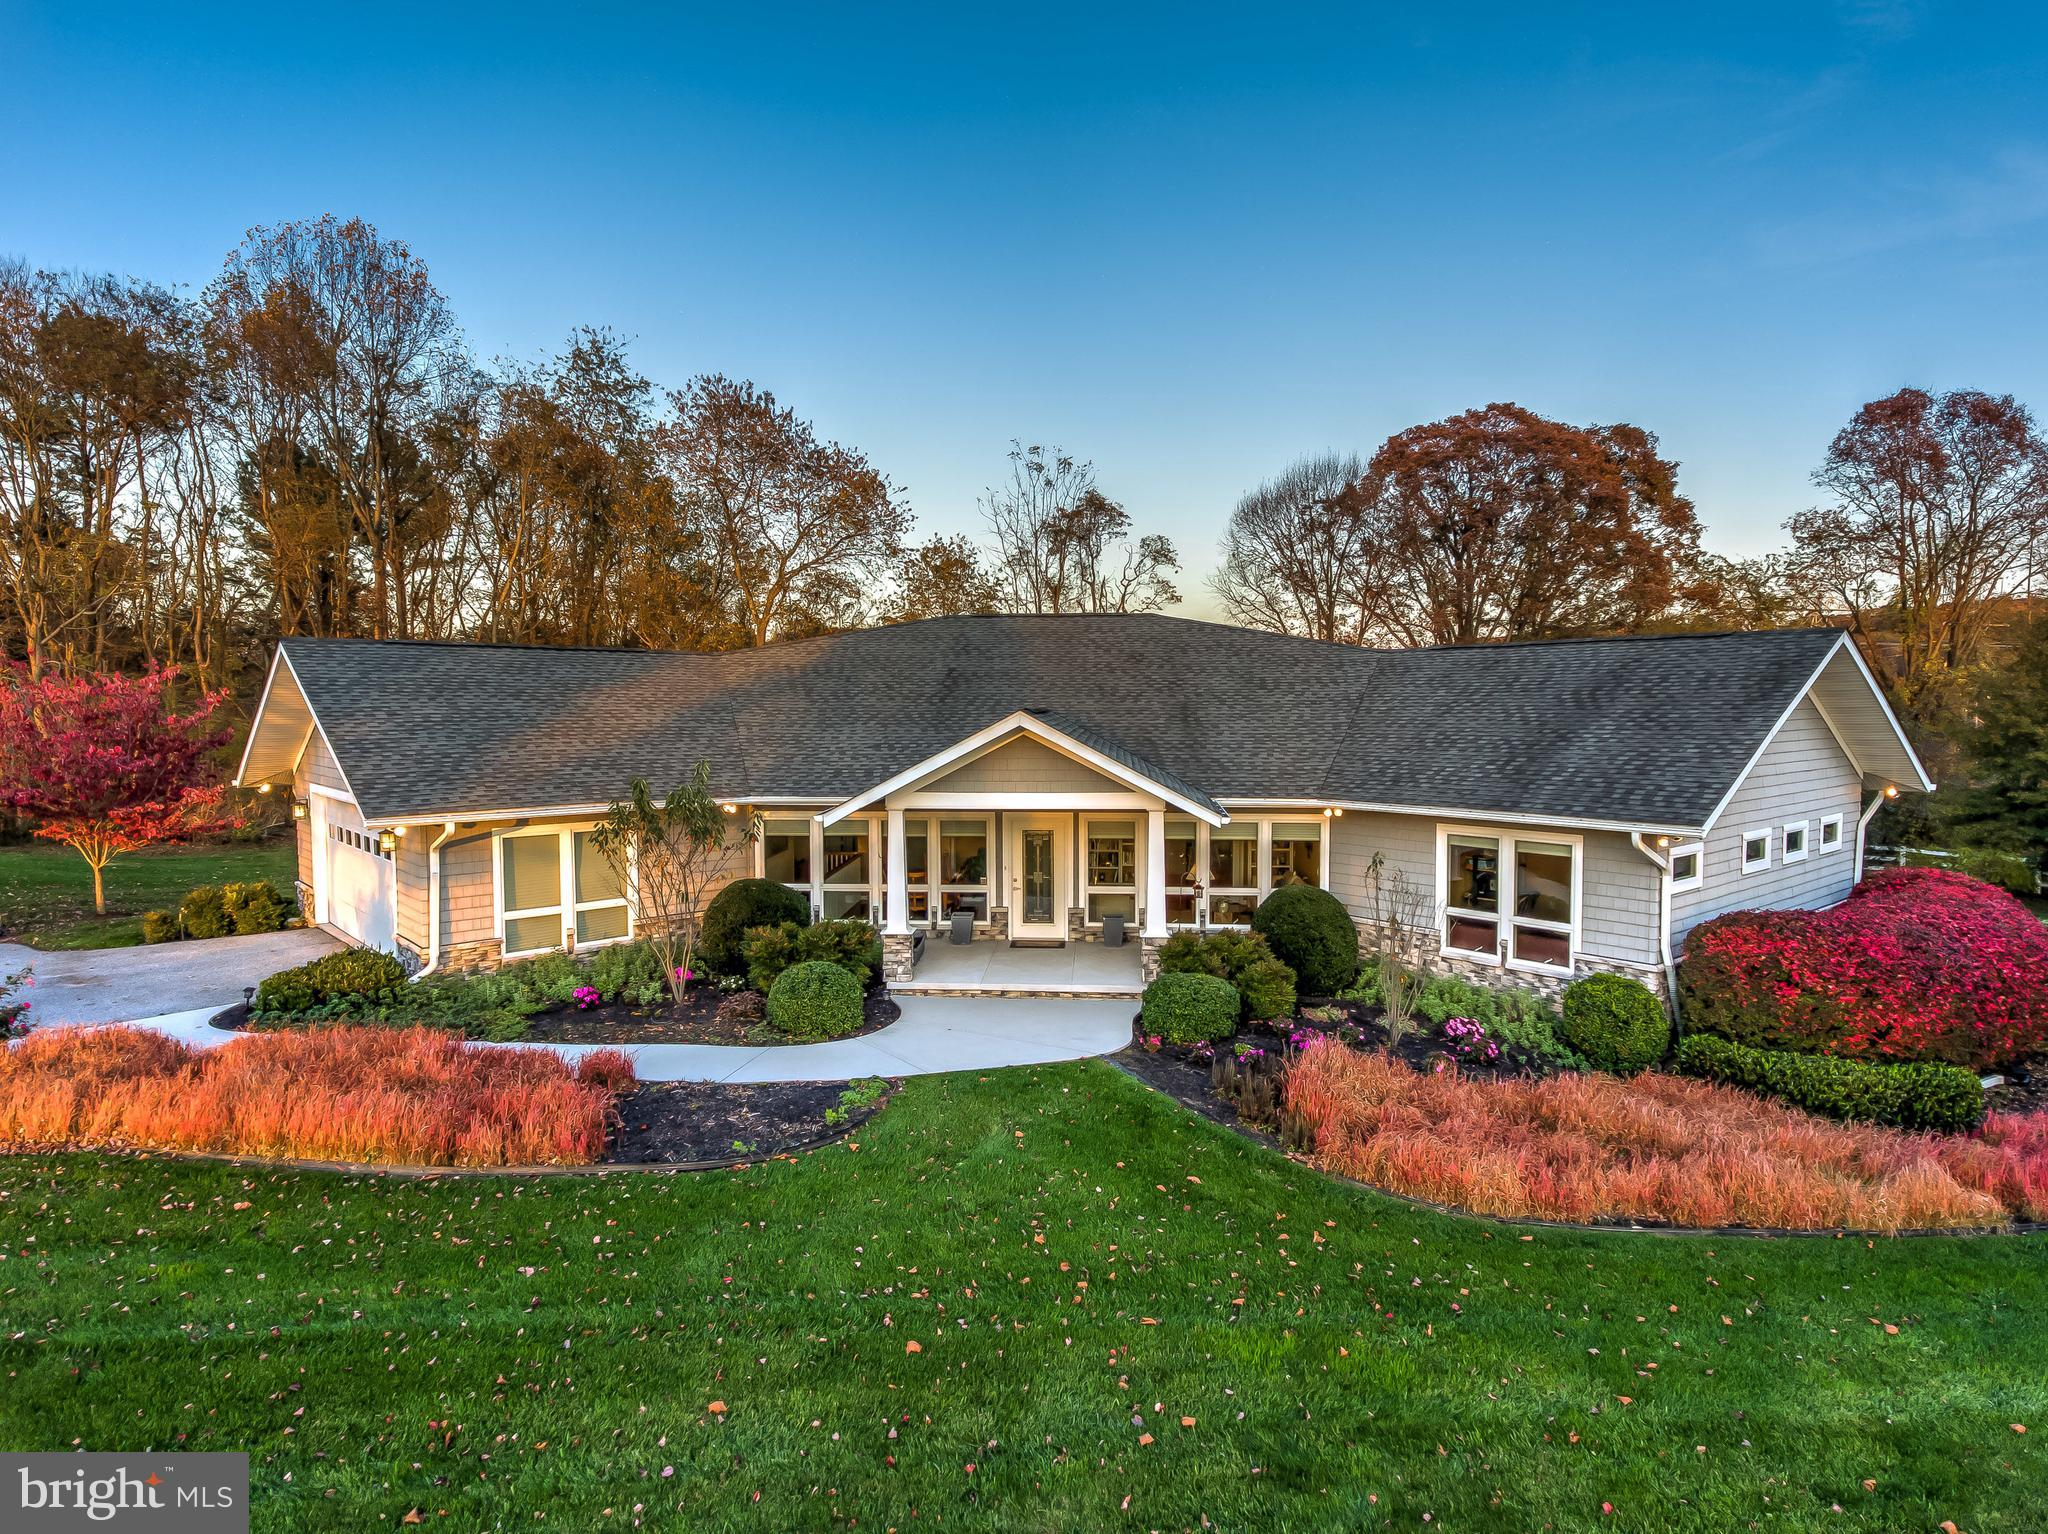 16301 DUBBS ROAD, SPARKS, MD 21152